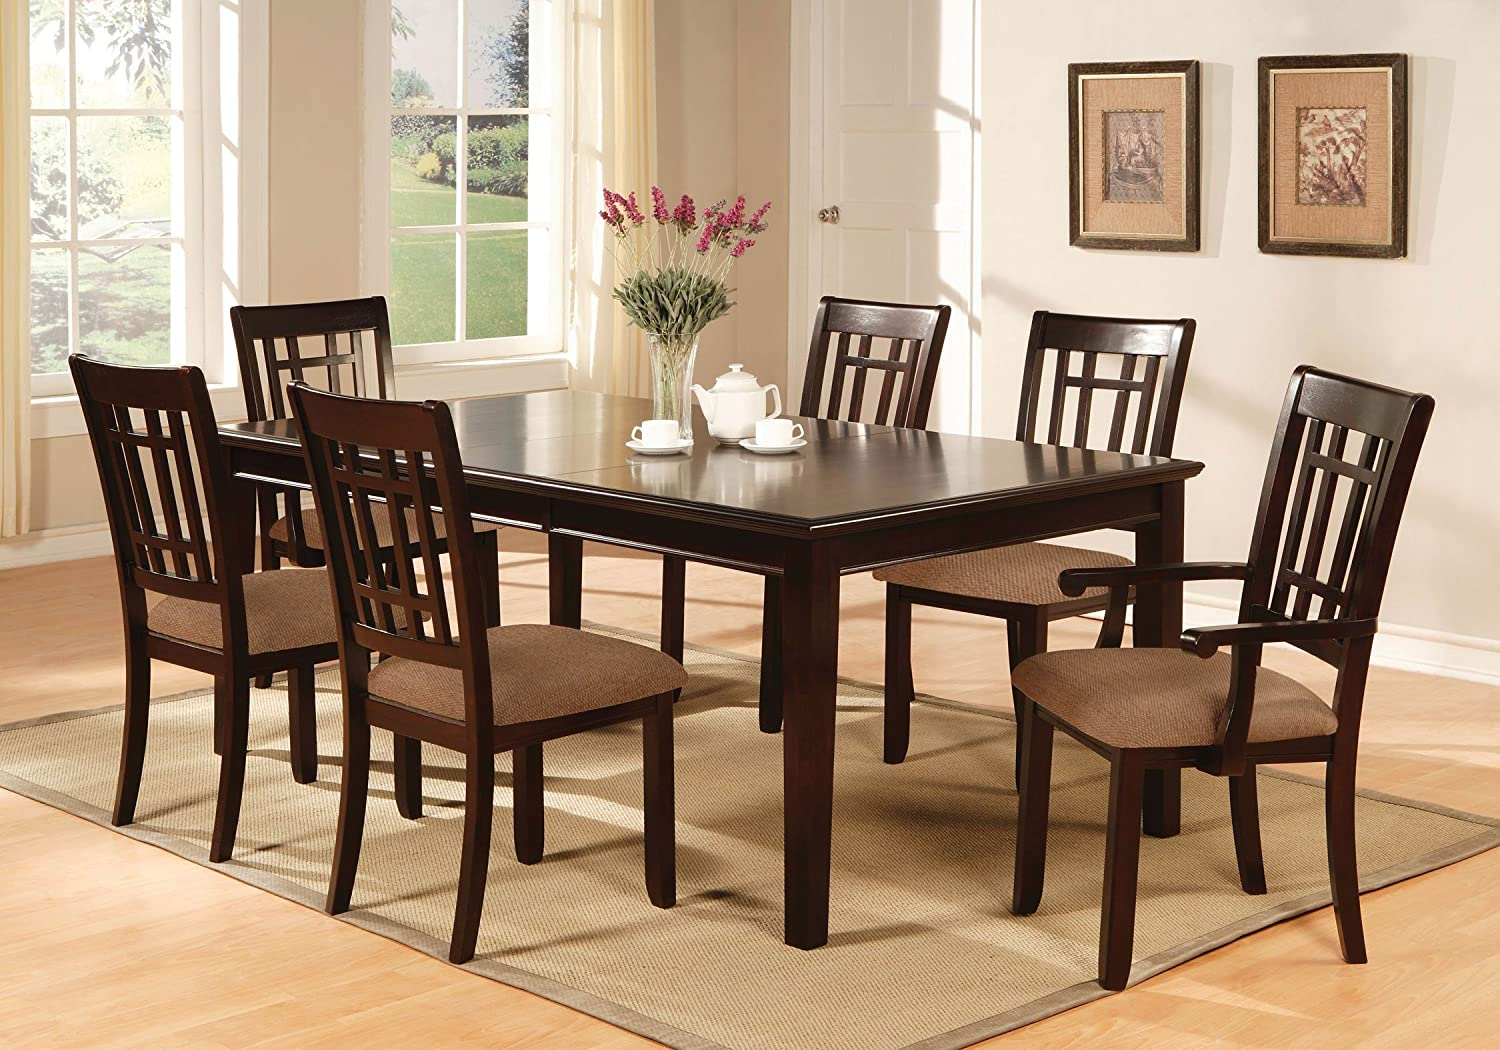 Amazoncom Furniture Of America Madison Piece Dining Table Set - Leaky faucet bathroolearn leather dining room chairs on sale